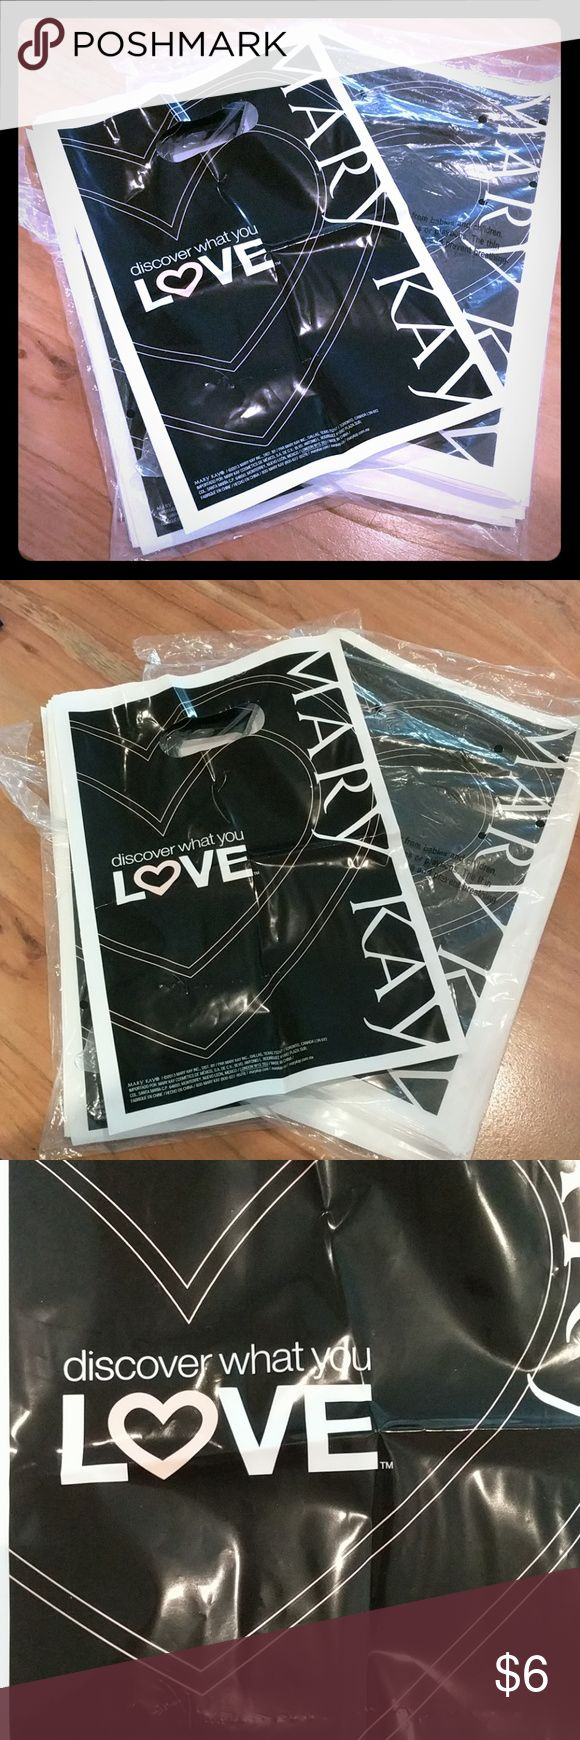 Mary Kay Small Bags + More 175 small Plastic Bags, 10 - 2015 Catalogs, 15 customer profile cards, 100 order forms, 20 intake cards, 1 money bag, 1 car decal, 1 foundation finder tool, 35 disposable trays, 10 Beauty Books, 1 Mary Kay Ash Bio, 20 Set Menus, 3 Specialty Set Menus, 2 Instructors guides, 6 Beginner magazines, 2 Start something beautiful discs and 1 stop doubting start dreaming disc. I love my MK business, all these tools are ones I no longer use! Also includes two hostess…